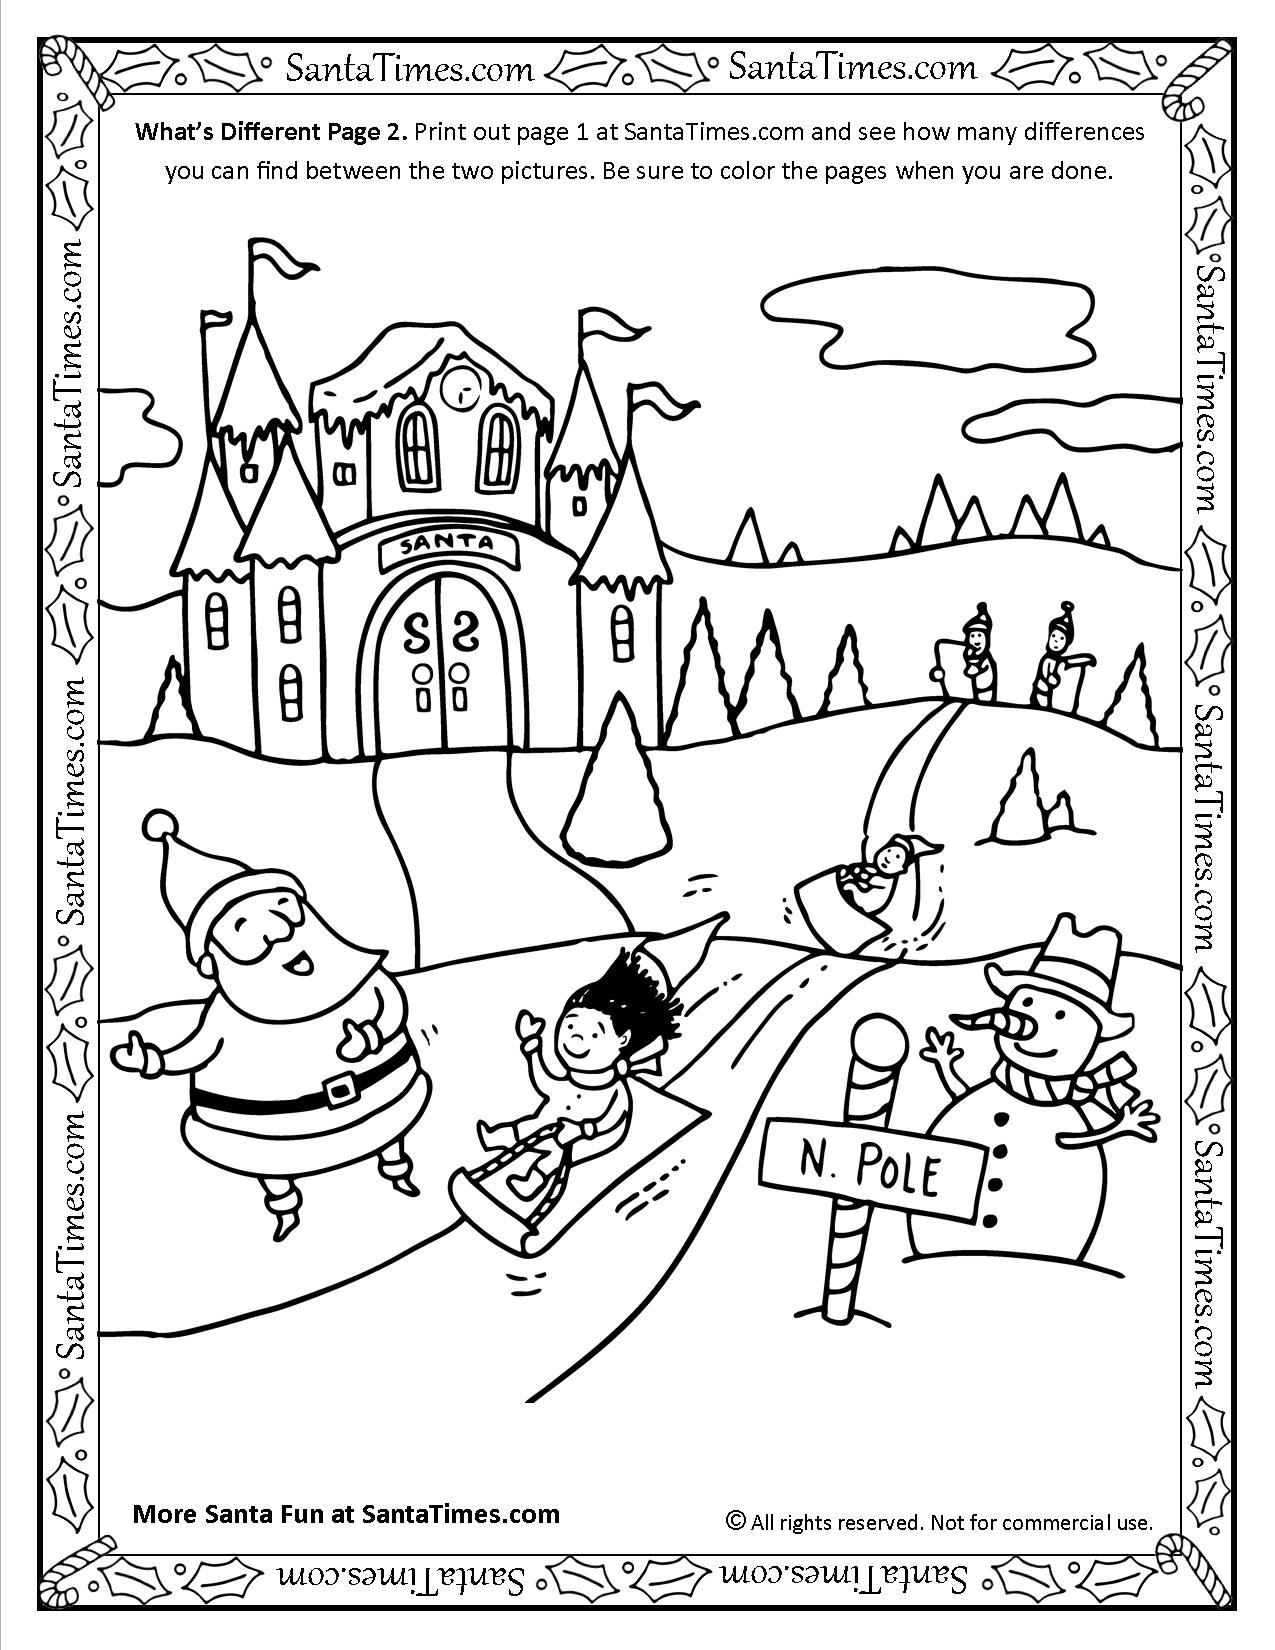 What's different at the north pole page 2 activity and coloring page